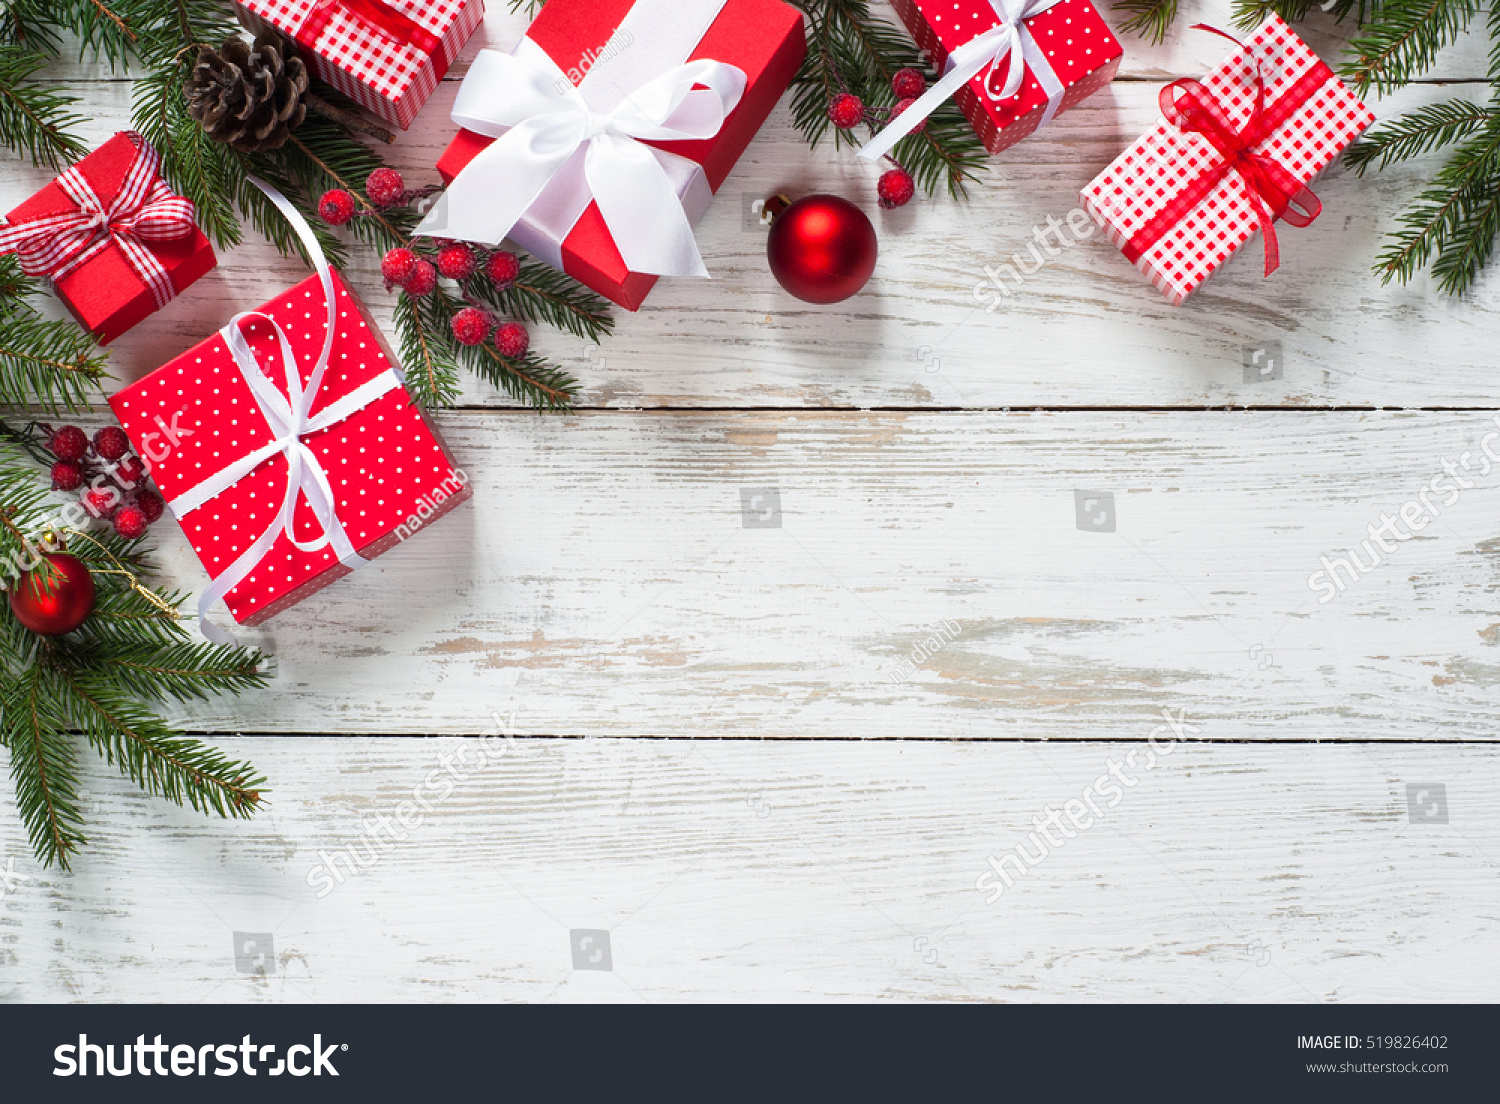 Christmas gift box christmas presents red 519826402 christmas gift box christmas presents in red boxes at white wooden table flat lay negle Image collections